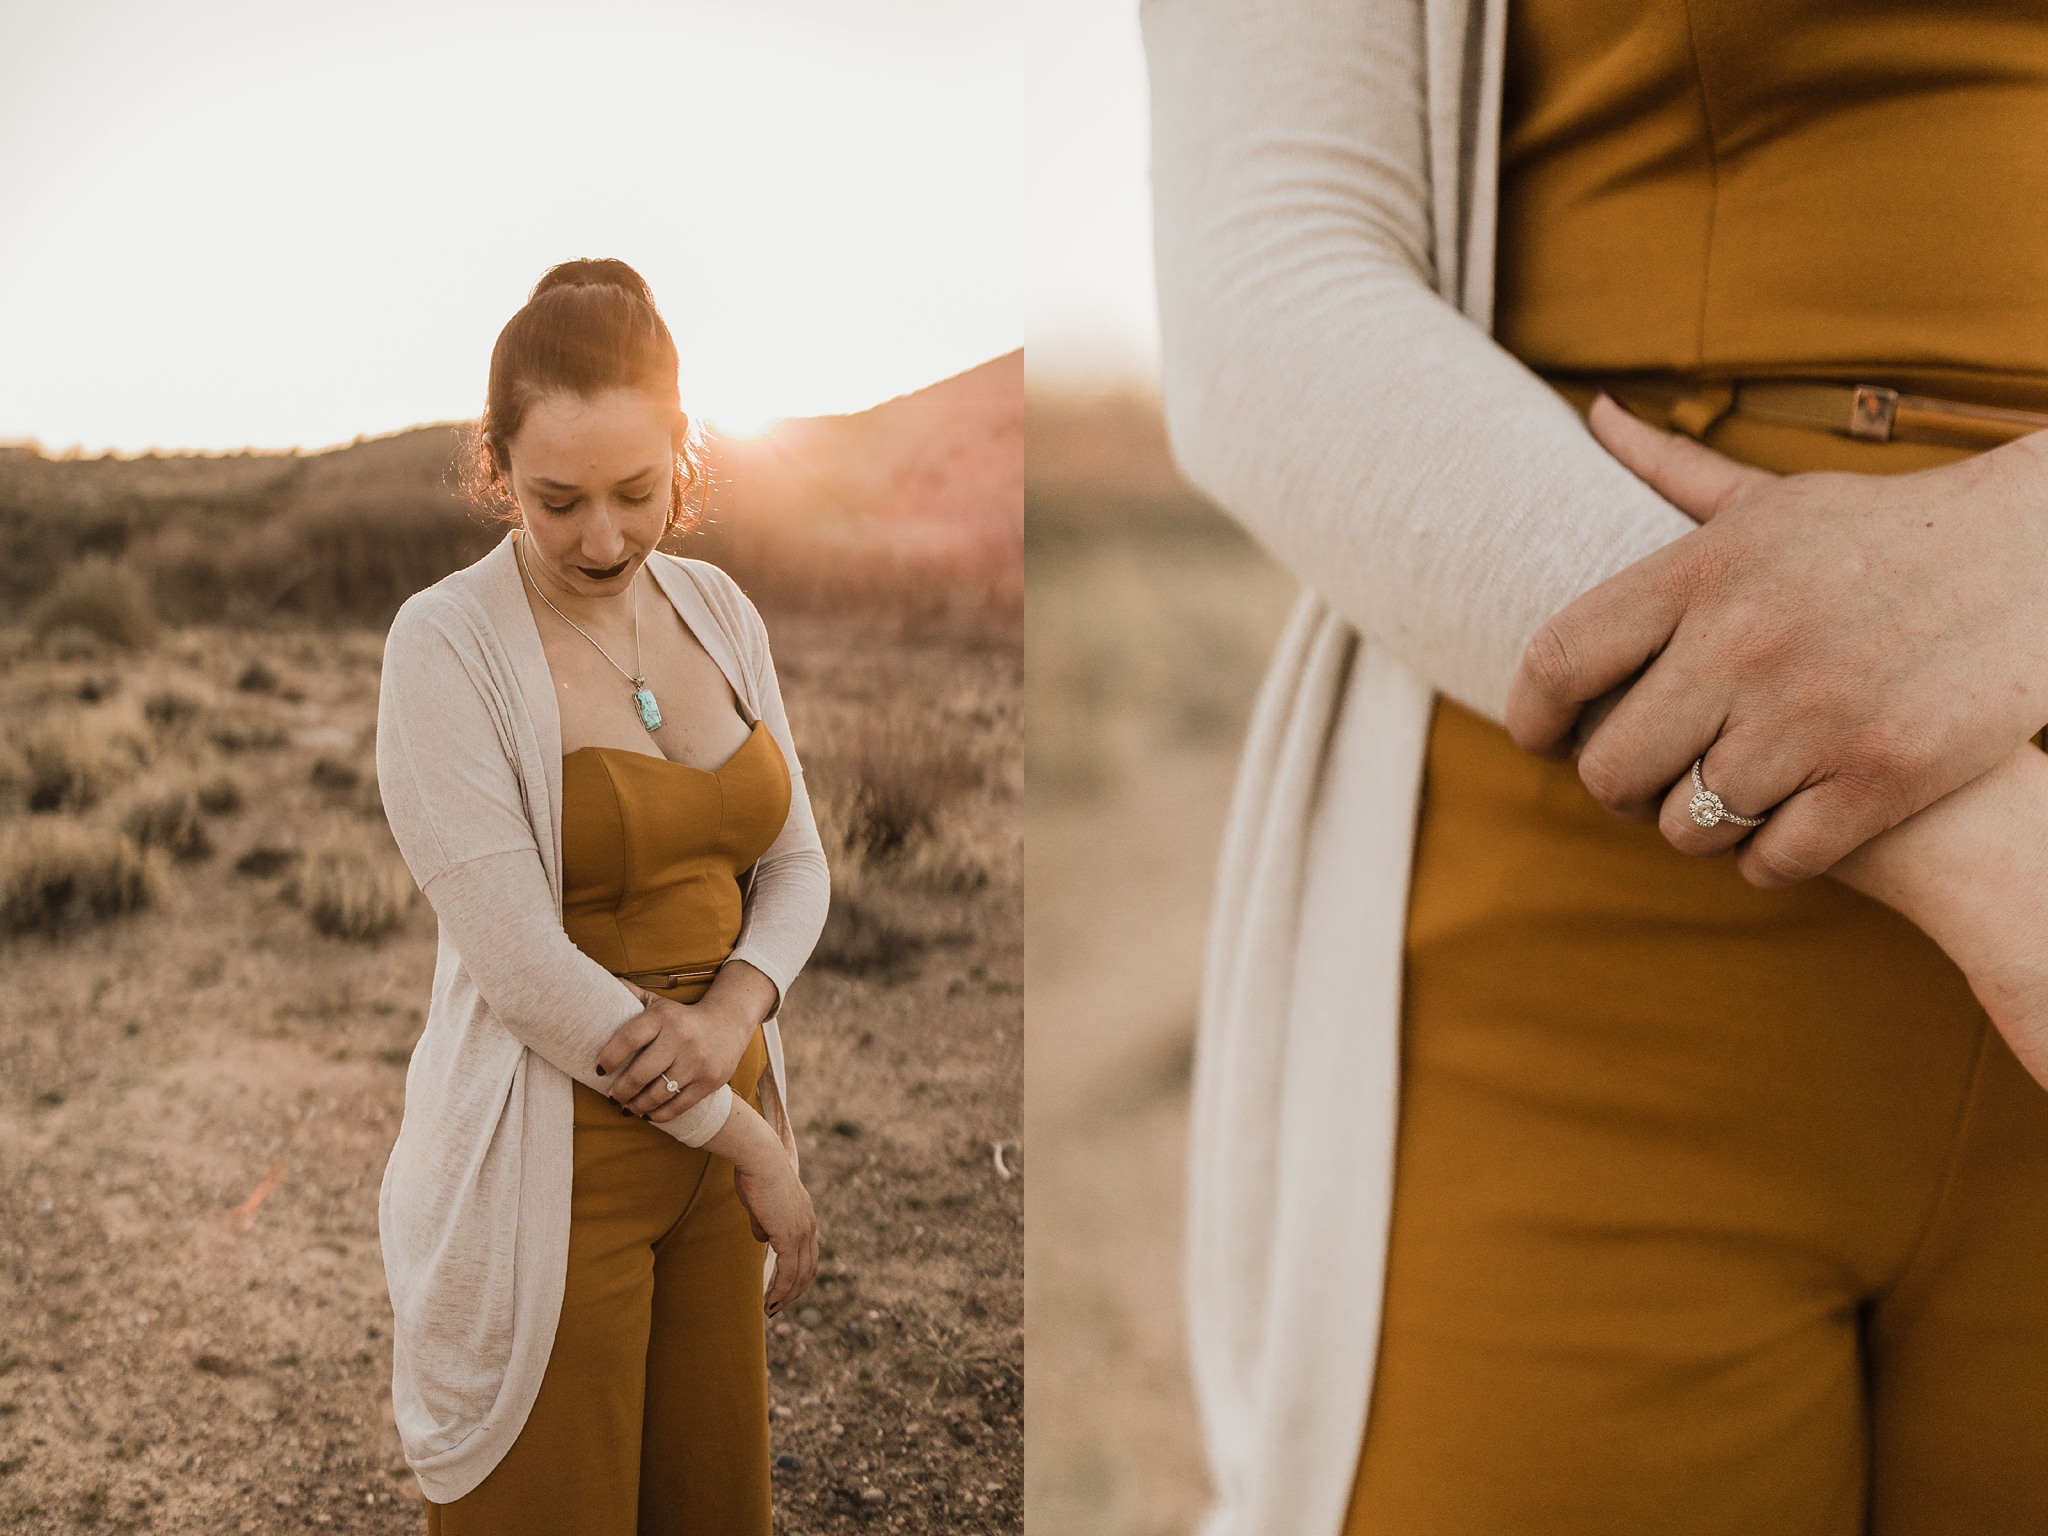 Alicia+lucia+photography+-+albuquerque+wedding+photographer+-+santa+fe+wedding+photography+-+new+mexico+wedding+photographer+-+new+mexico+wedding+-+engagement+-+new+mexico+engagemnt+-+outdoor+engagement_0012.jpg